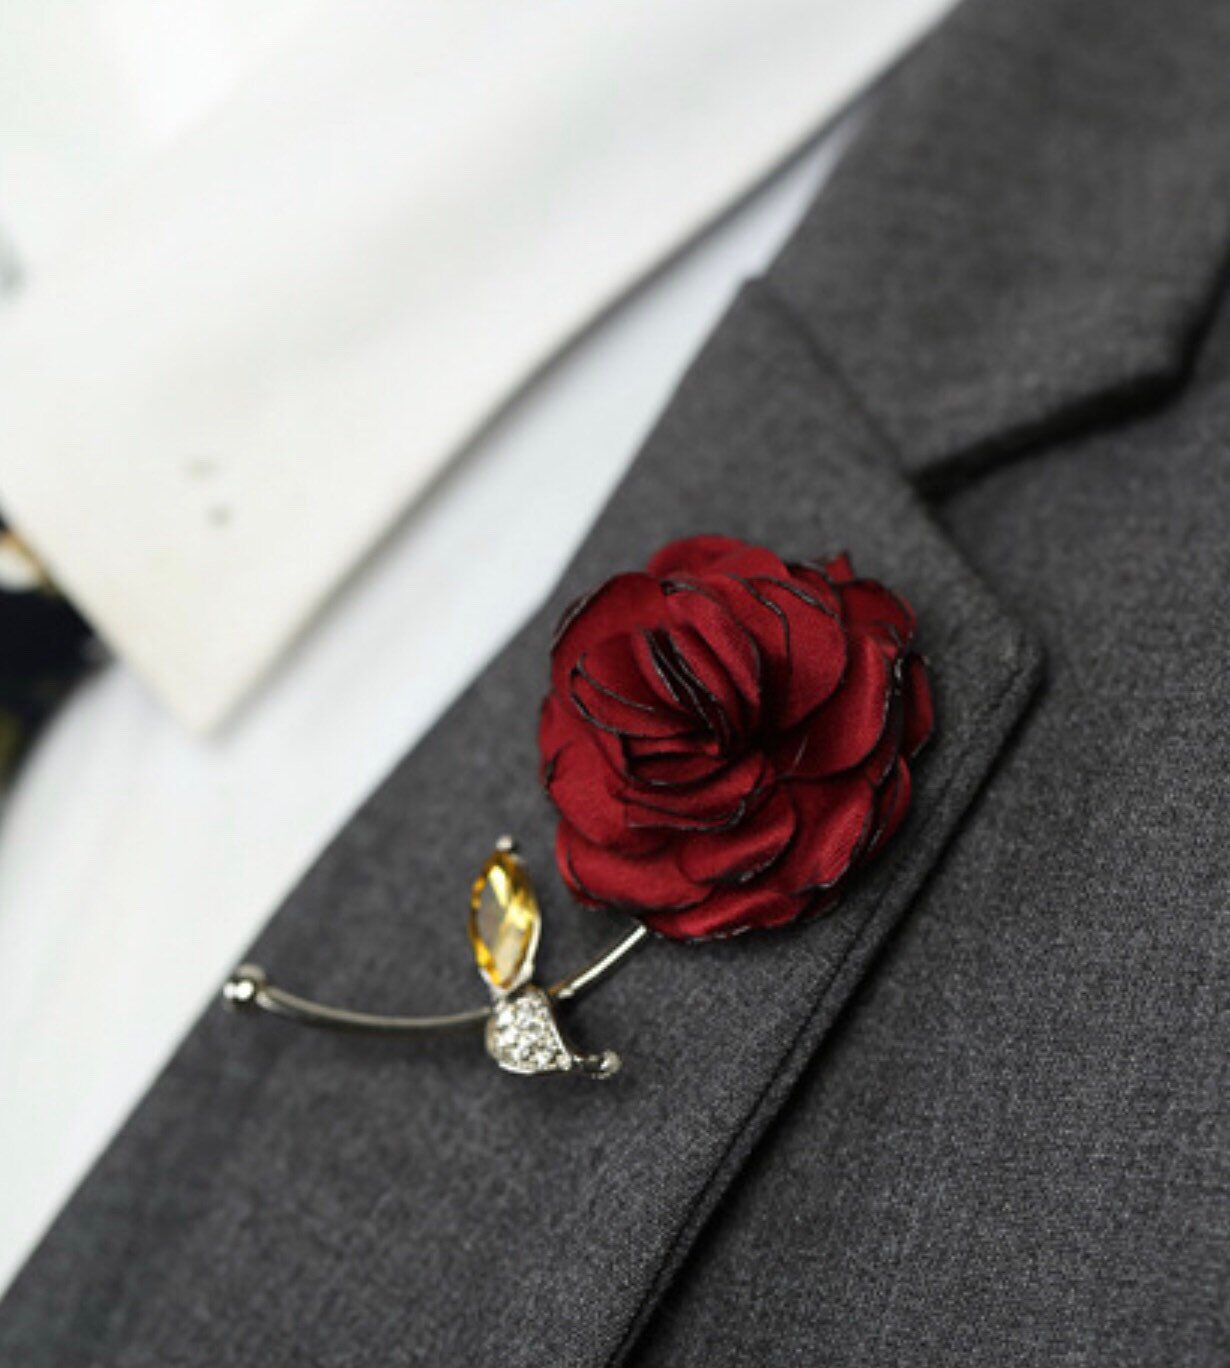 Red Rose Flower Lapel Pin, Enamel Pin Cloth Art Accessories Brooch Pin Men Women Pin, Groomsmen Boutonniere Fashion Wedding Favors Suit Pin is part of Clothes Art Flower - Red Rose Flower Lapel Pin Red Women Men Cloth Brooch pin   Red Rose Flower Lapel Pin Silver Metal Women Men Cloth Brooch pin Flower and Metal Gold Pin and Barrel   As a gift, for weddings, the office, date night Perfect every single day! This lapel flower adds an excellent pop of color to any outfit!              SAME DAY SHIPPING Perfect Size for her dress, Tuxedo suit, jacket pin